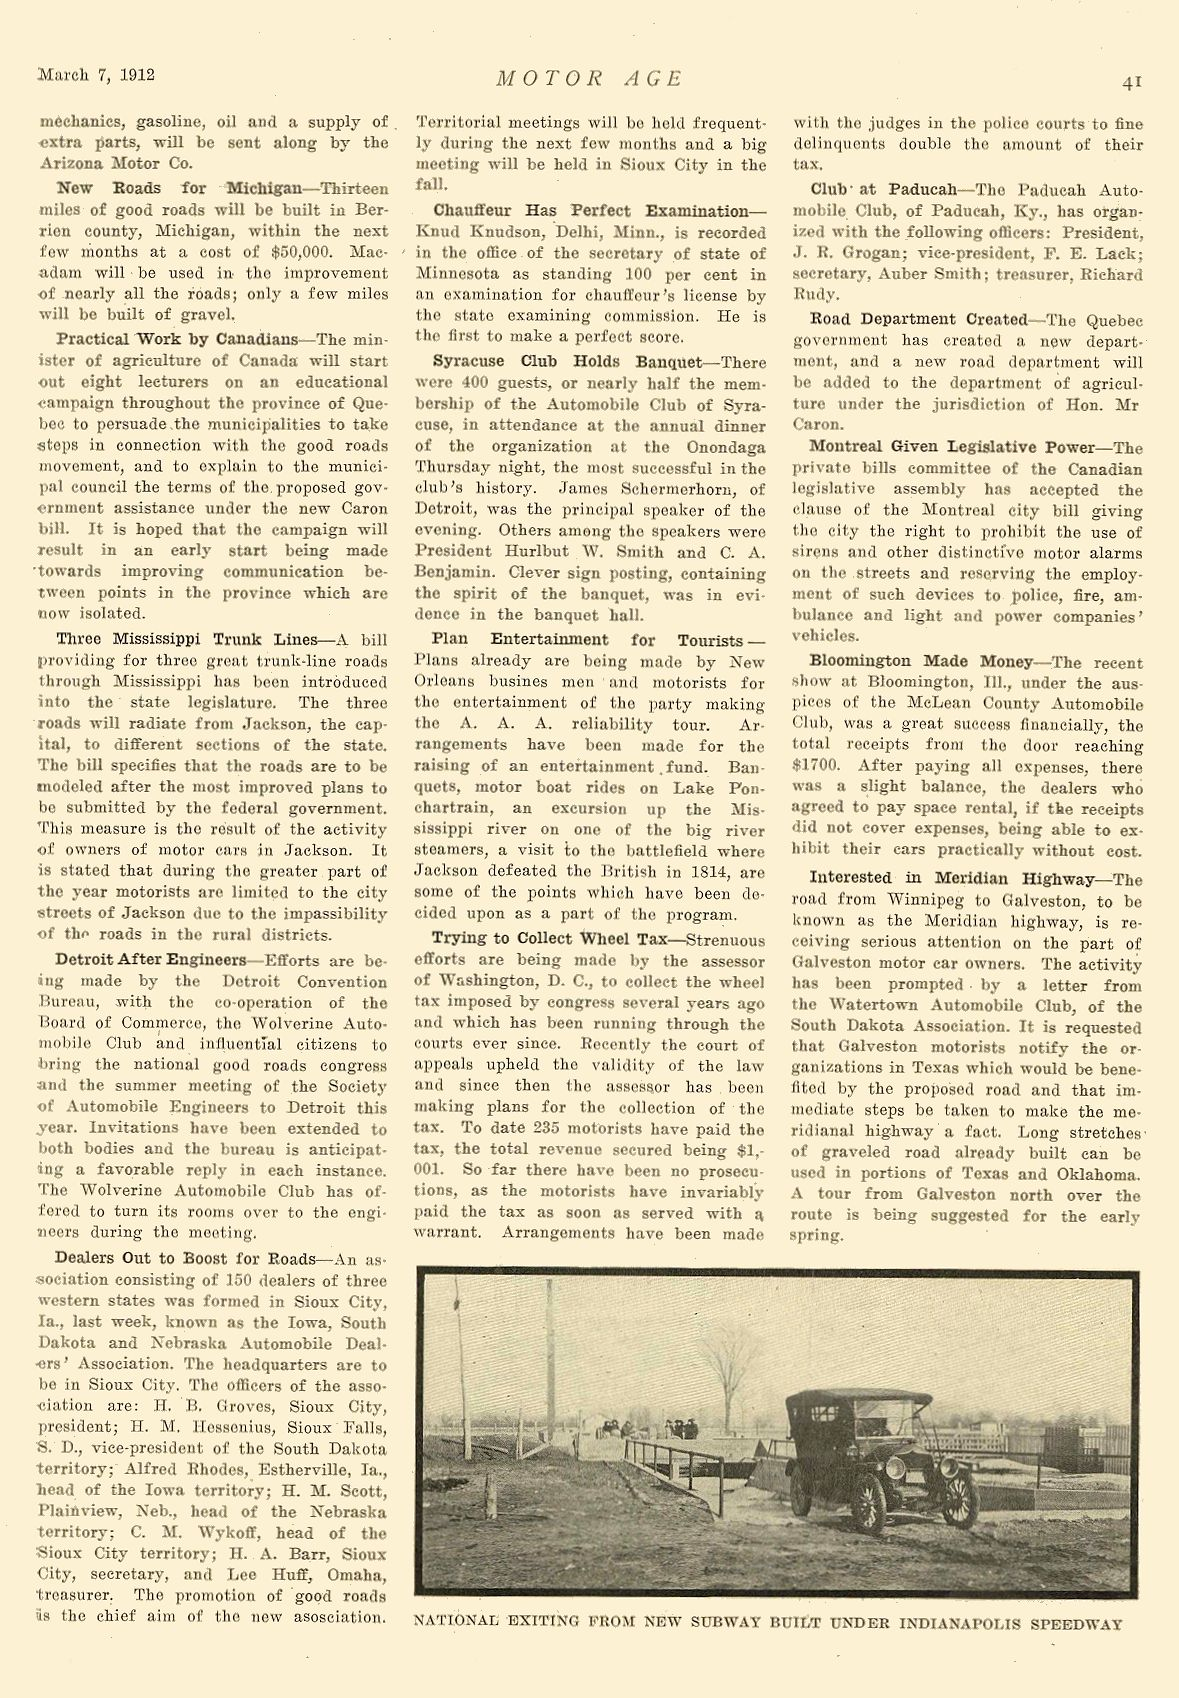 1912 3 7 NATIONAL NATIONAL EXISTING FROM NEW SUBWAY BUILT UNDER INDIANAPOLIS SPEEDWAY National Motor Vehicle Co. Indianapolis, IND MOTOR AGE March 7, 1912 8.5″x12″ page 41